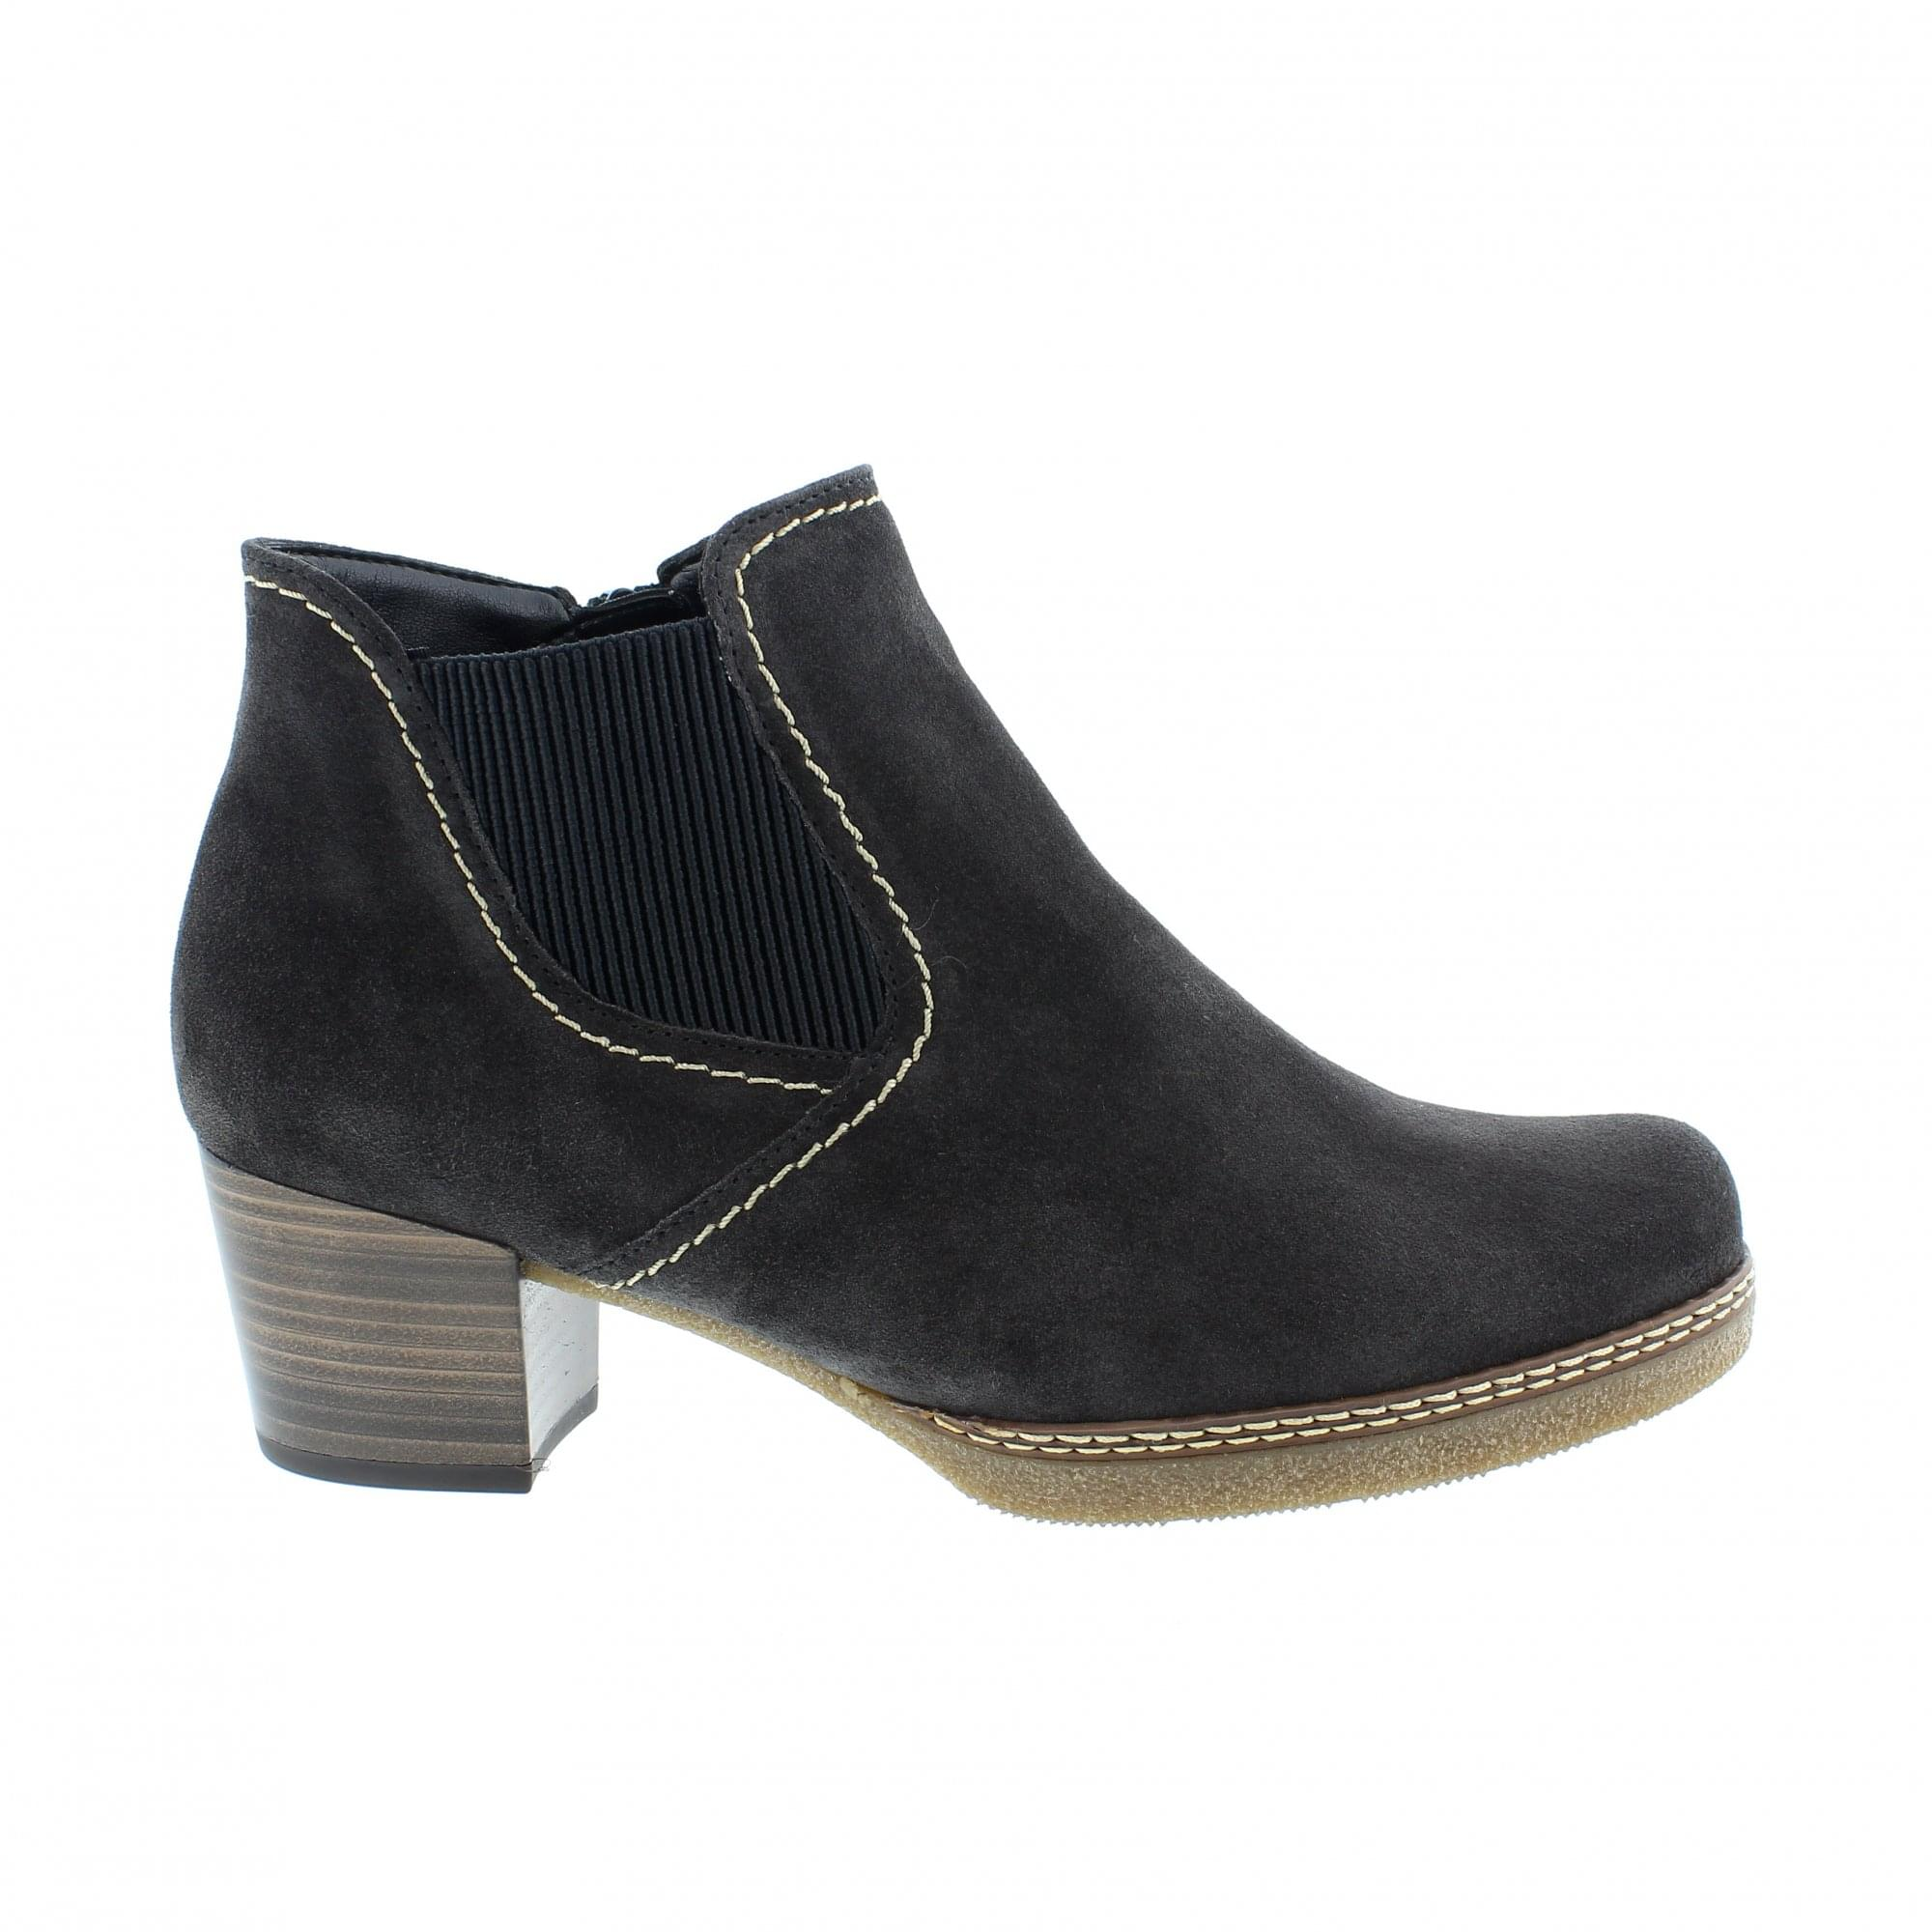 661-39 Grey Suede Womens Chelsea Boots